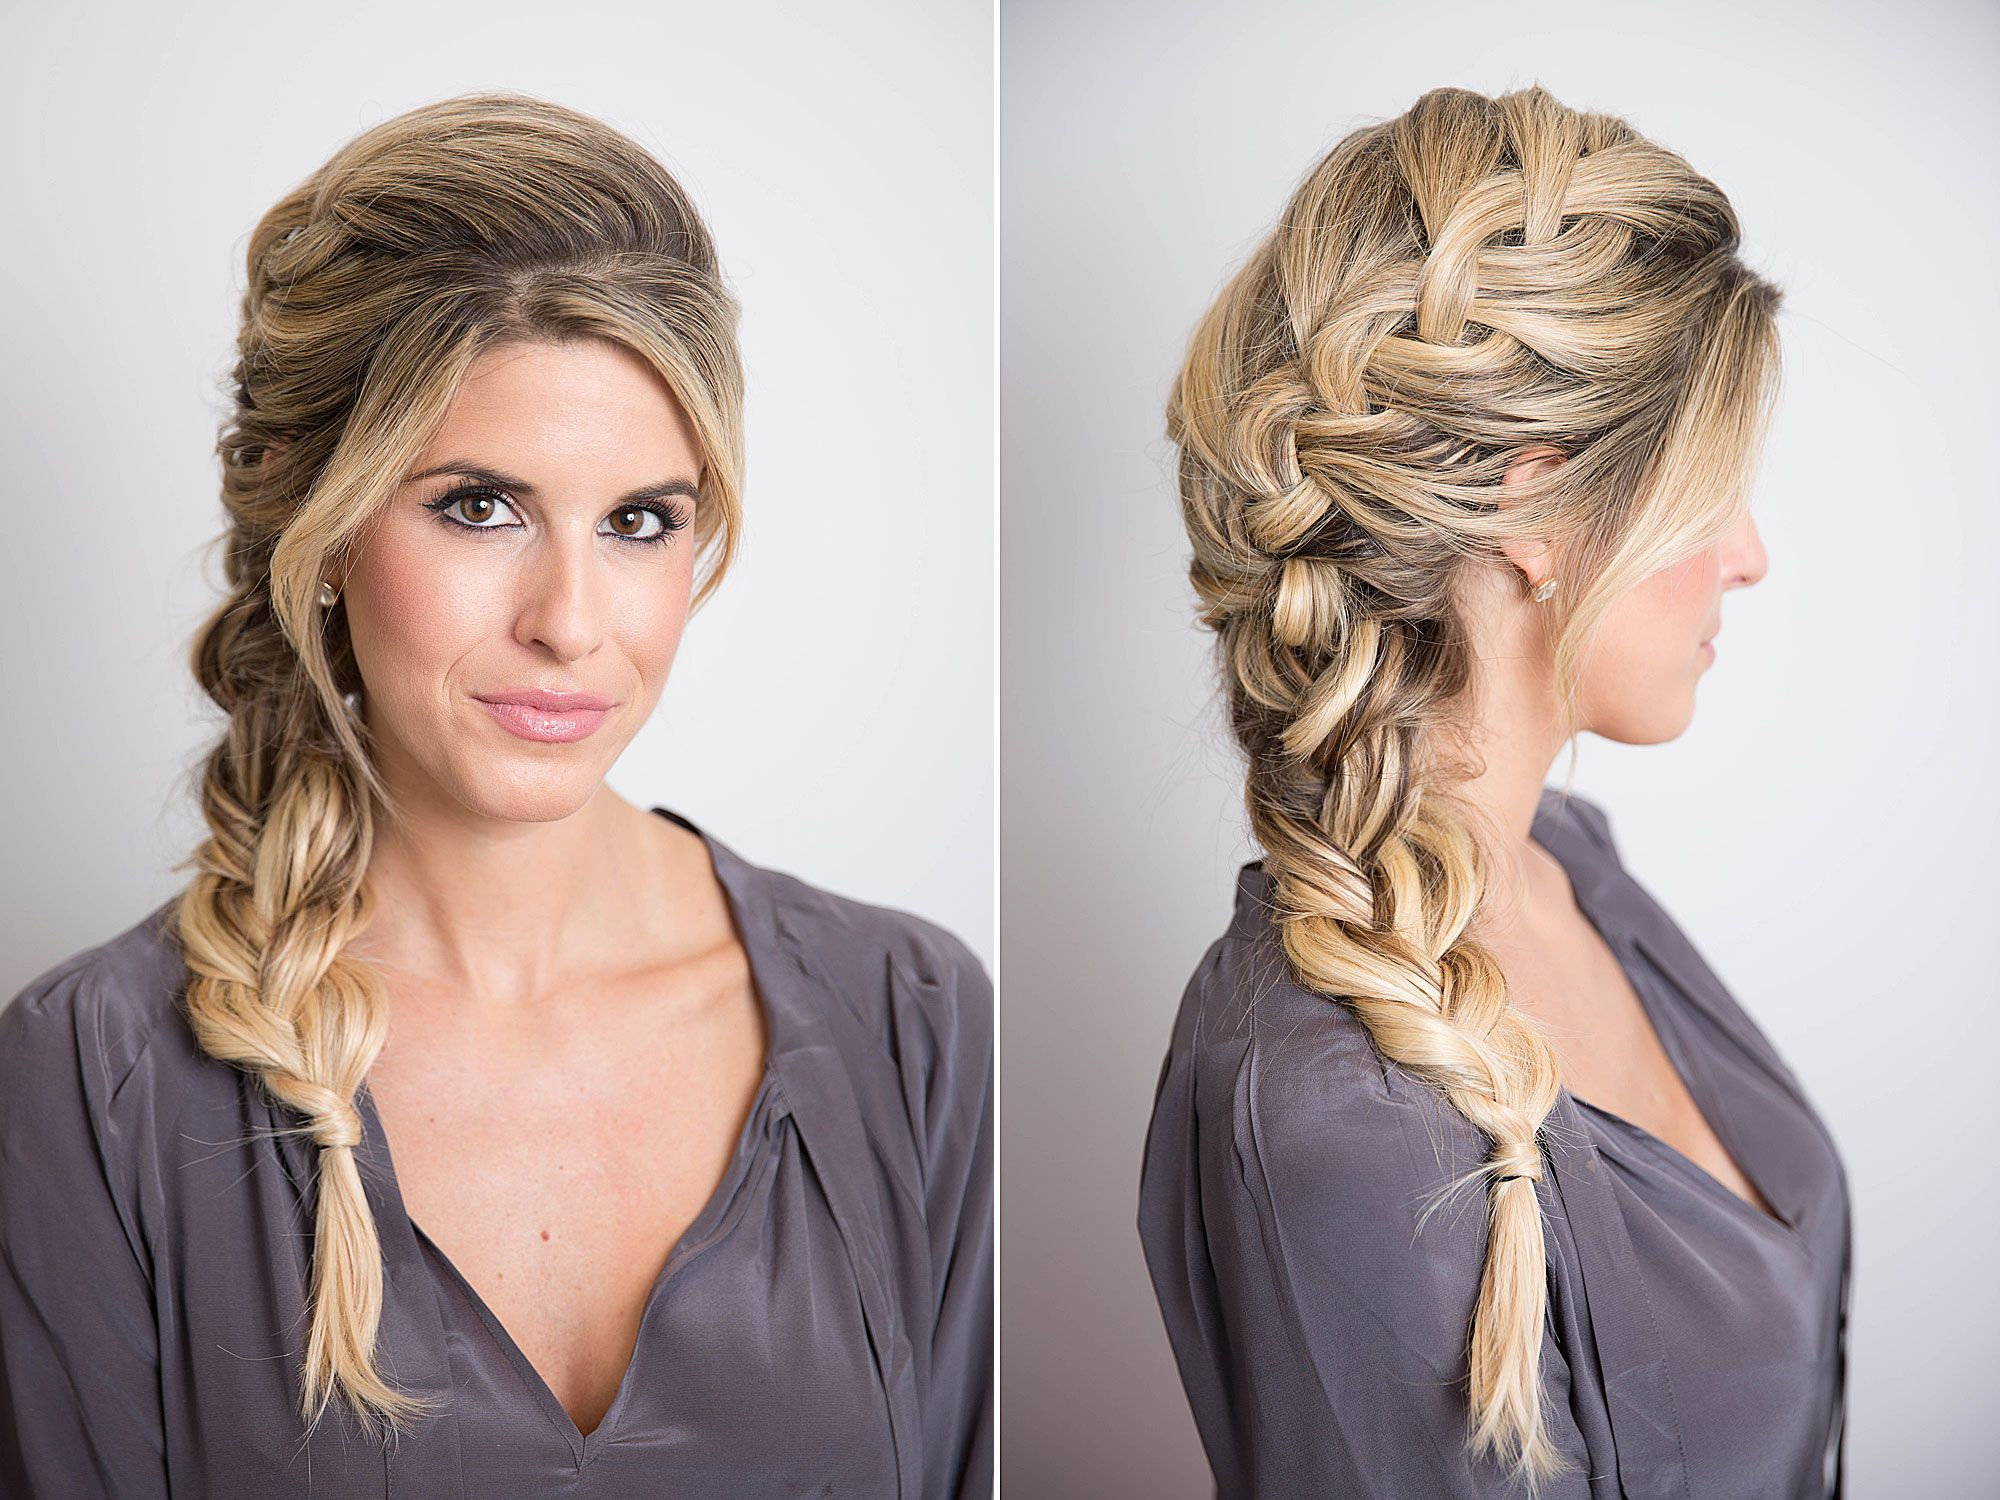 Most Current Wrapping Fishtail Braided Hairstyles Intended For 17 Braided Hairstyles With Gifs – How To Do Every Type Of Braid (View 12 of 20)